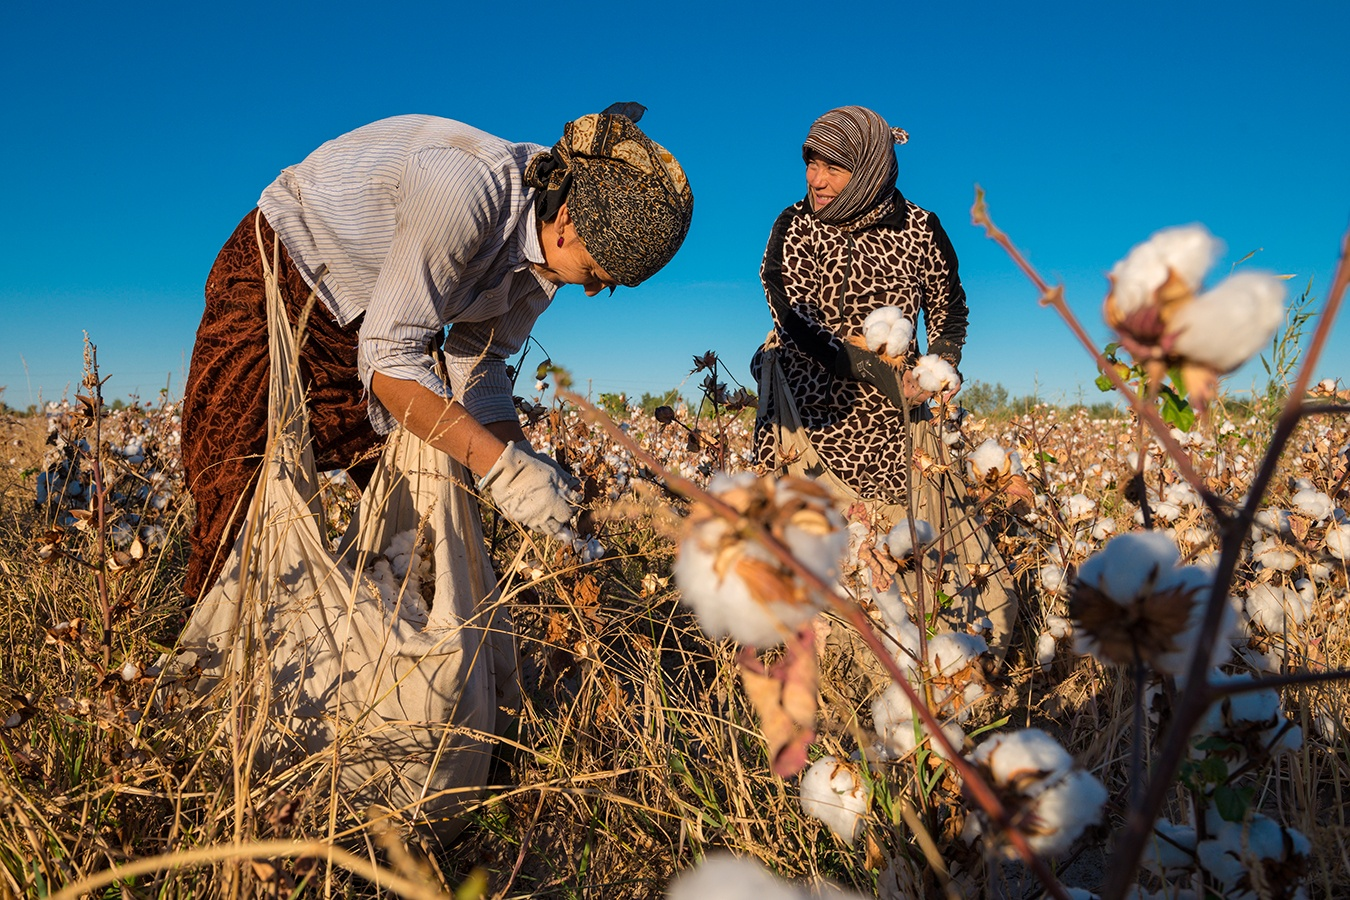 Uzbekistan has a state run system of forced labour to produce it's cotton (image courtesy of Open Society Foundations)